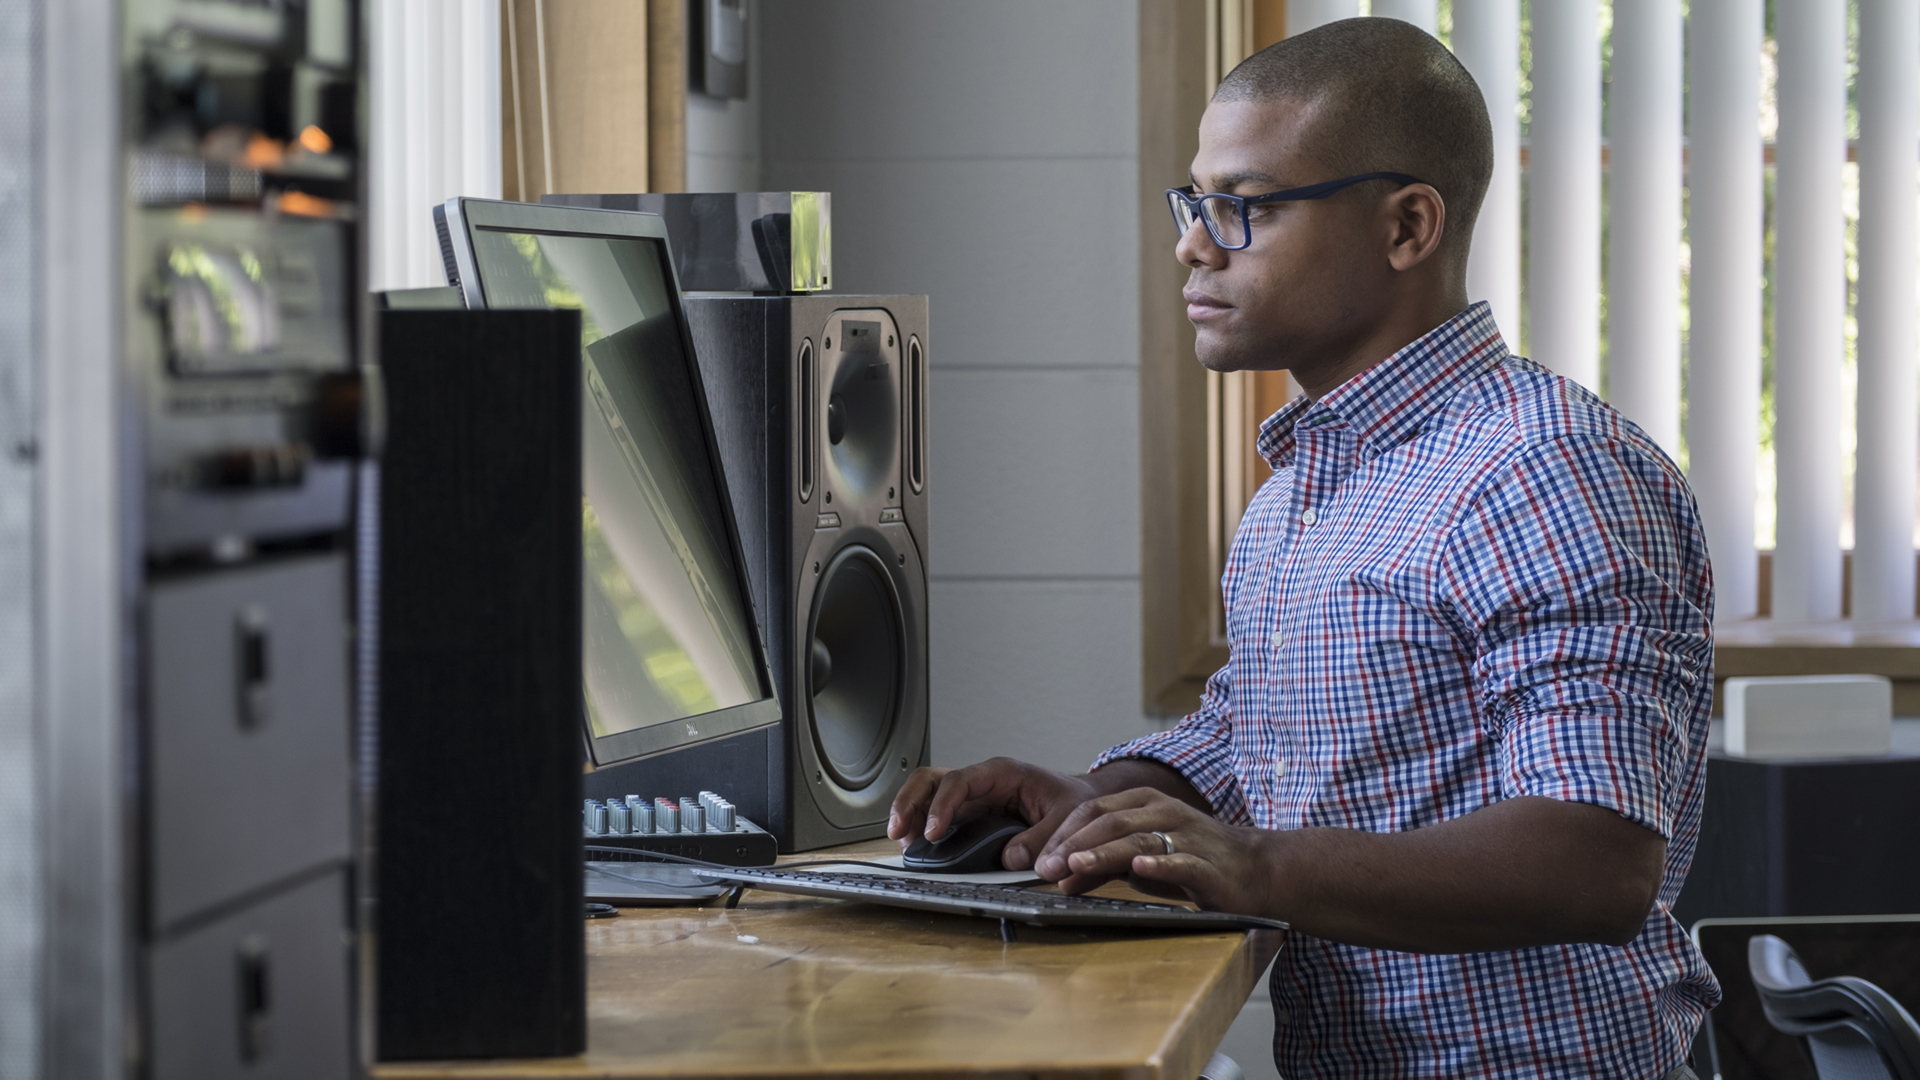 TOP 10 IT CAREERS FOR 2019